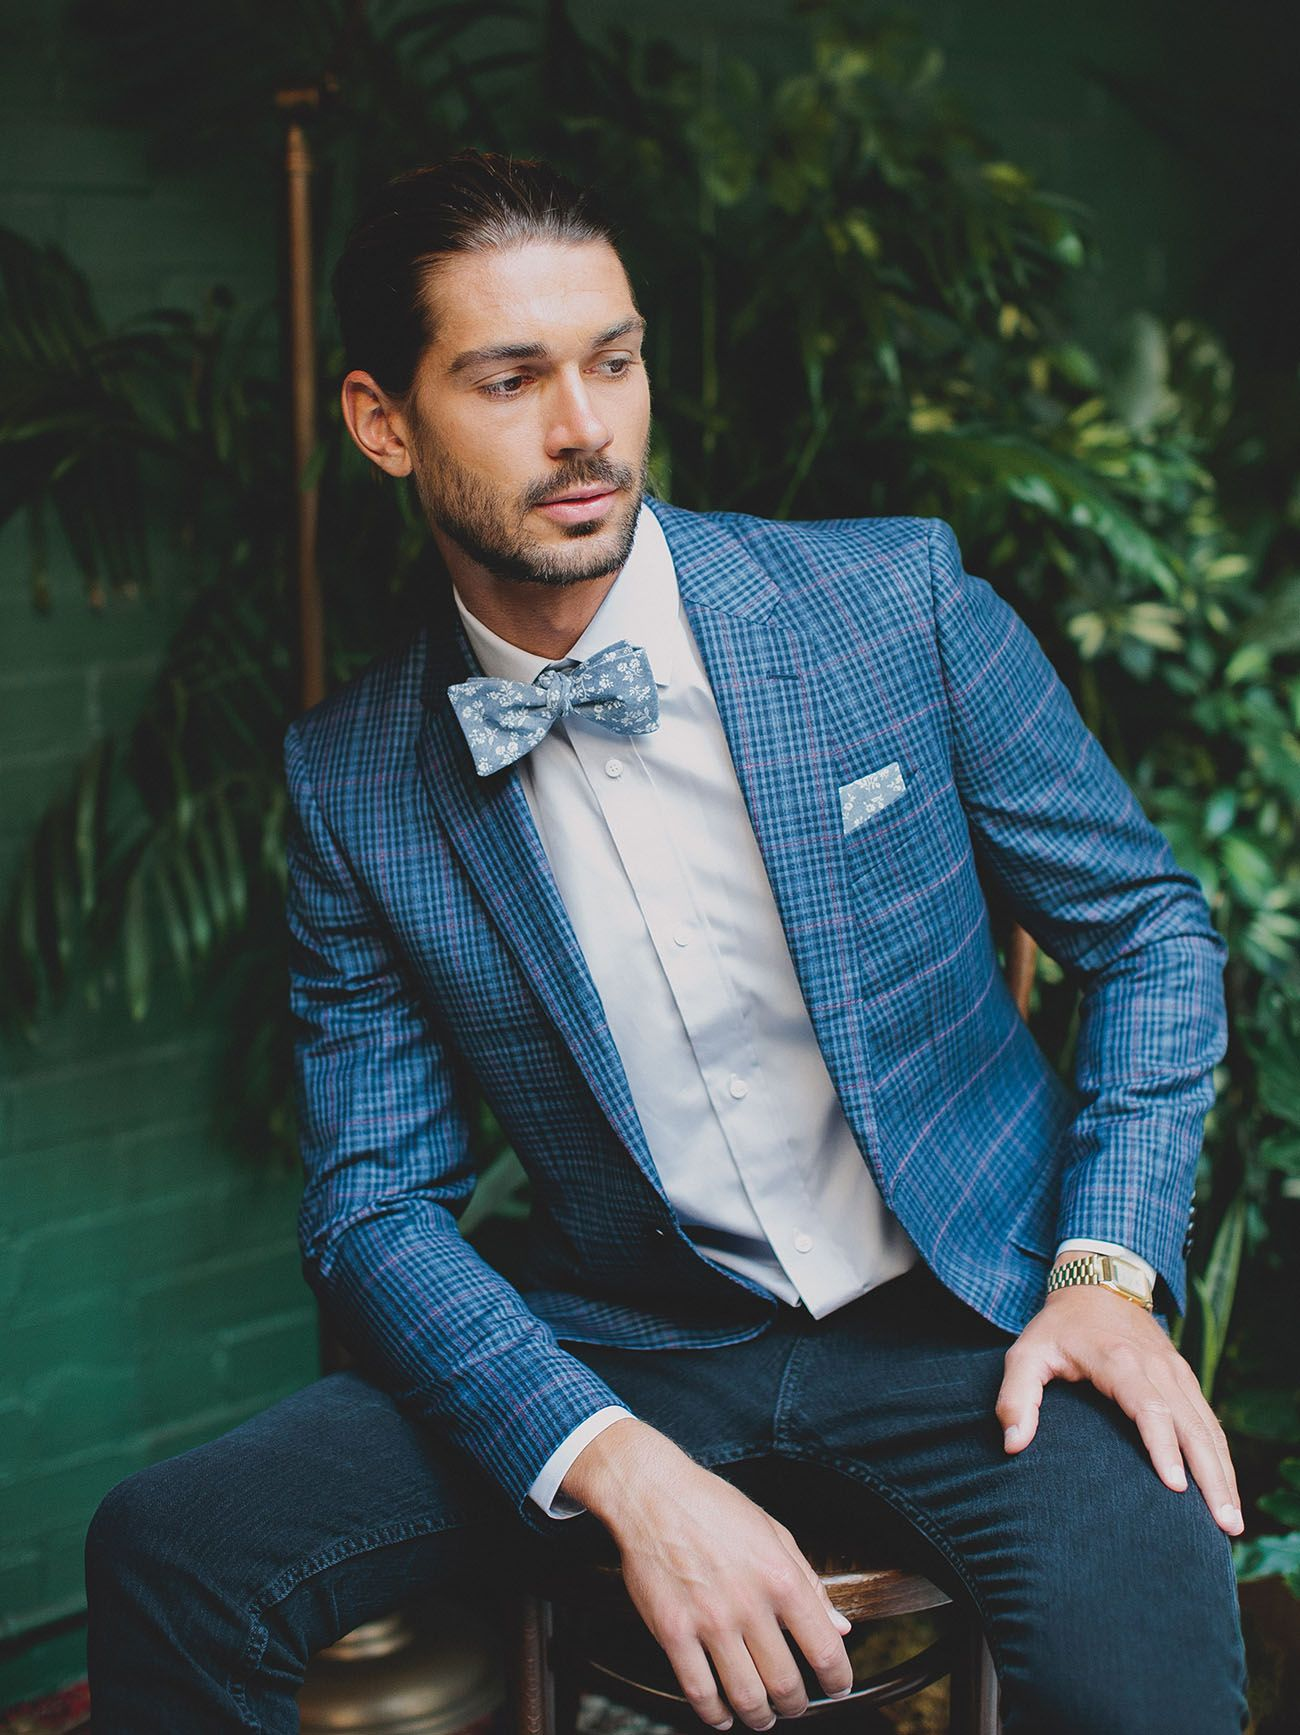 Introducing The GWS x Neck & Tie Company Tie Collection | Pinterest ...